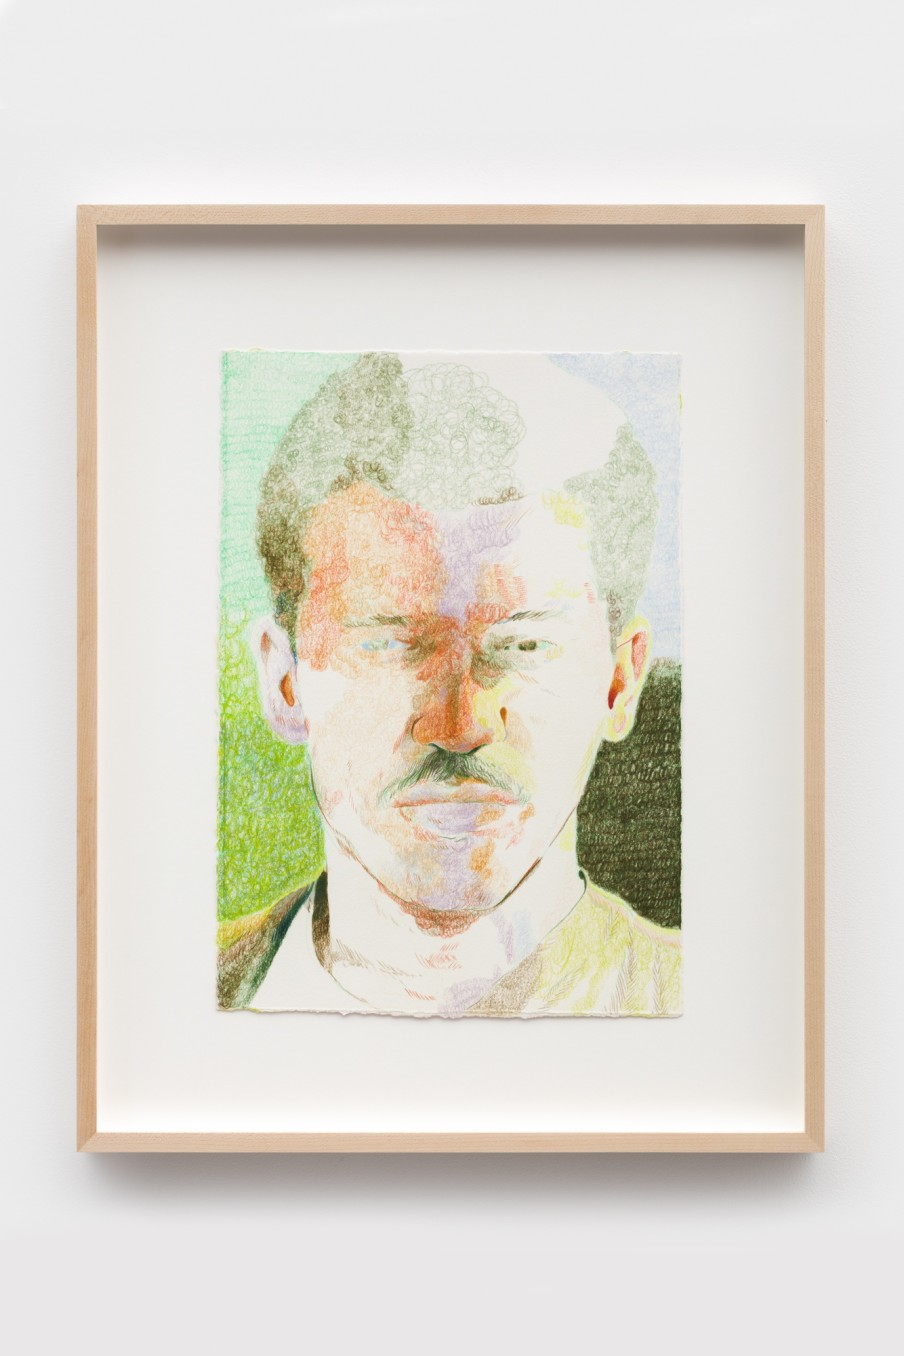 Anthony Cudahy Green gaze, 2021 Colored pencil on paper Image: 35.6 x 25.4 cm 14 x 10 in Frame: 50.4...